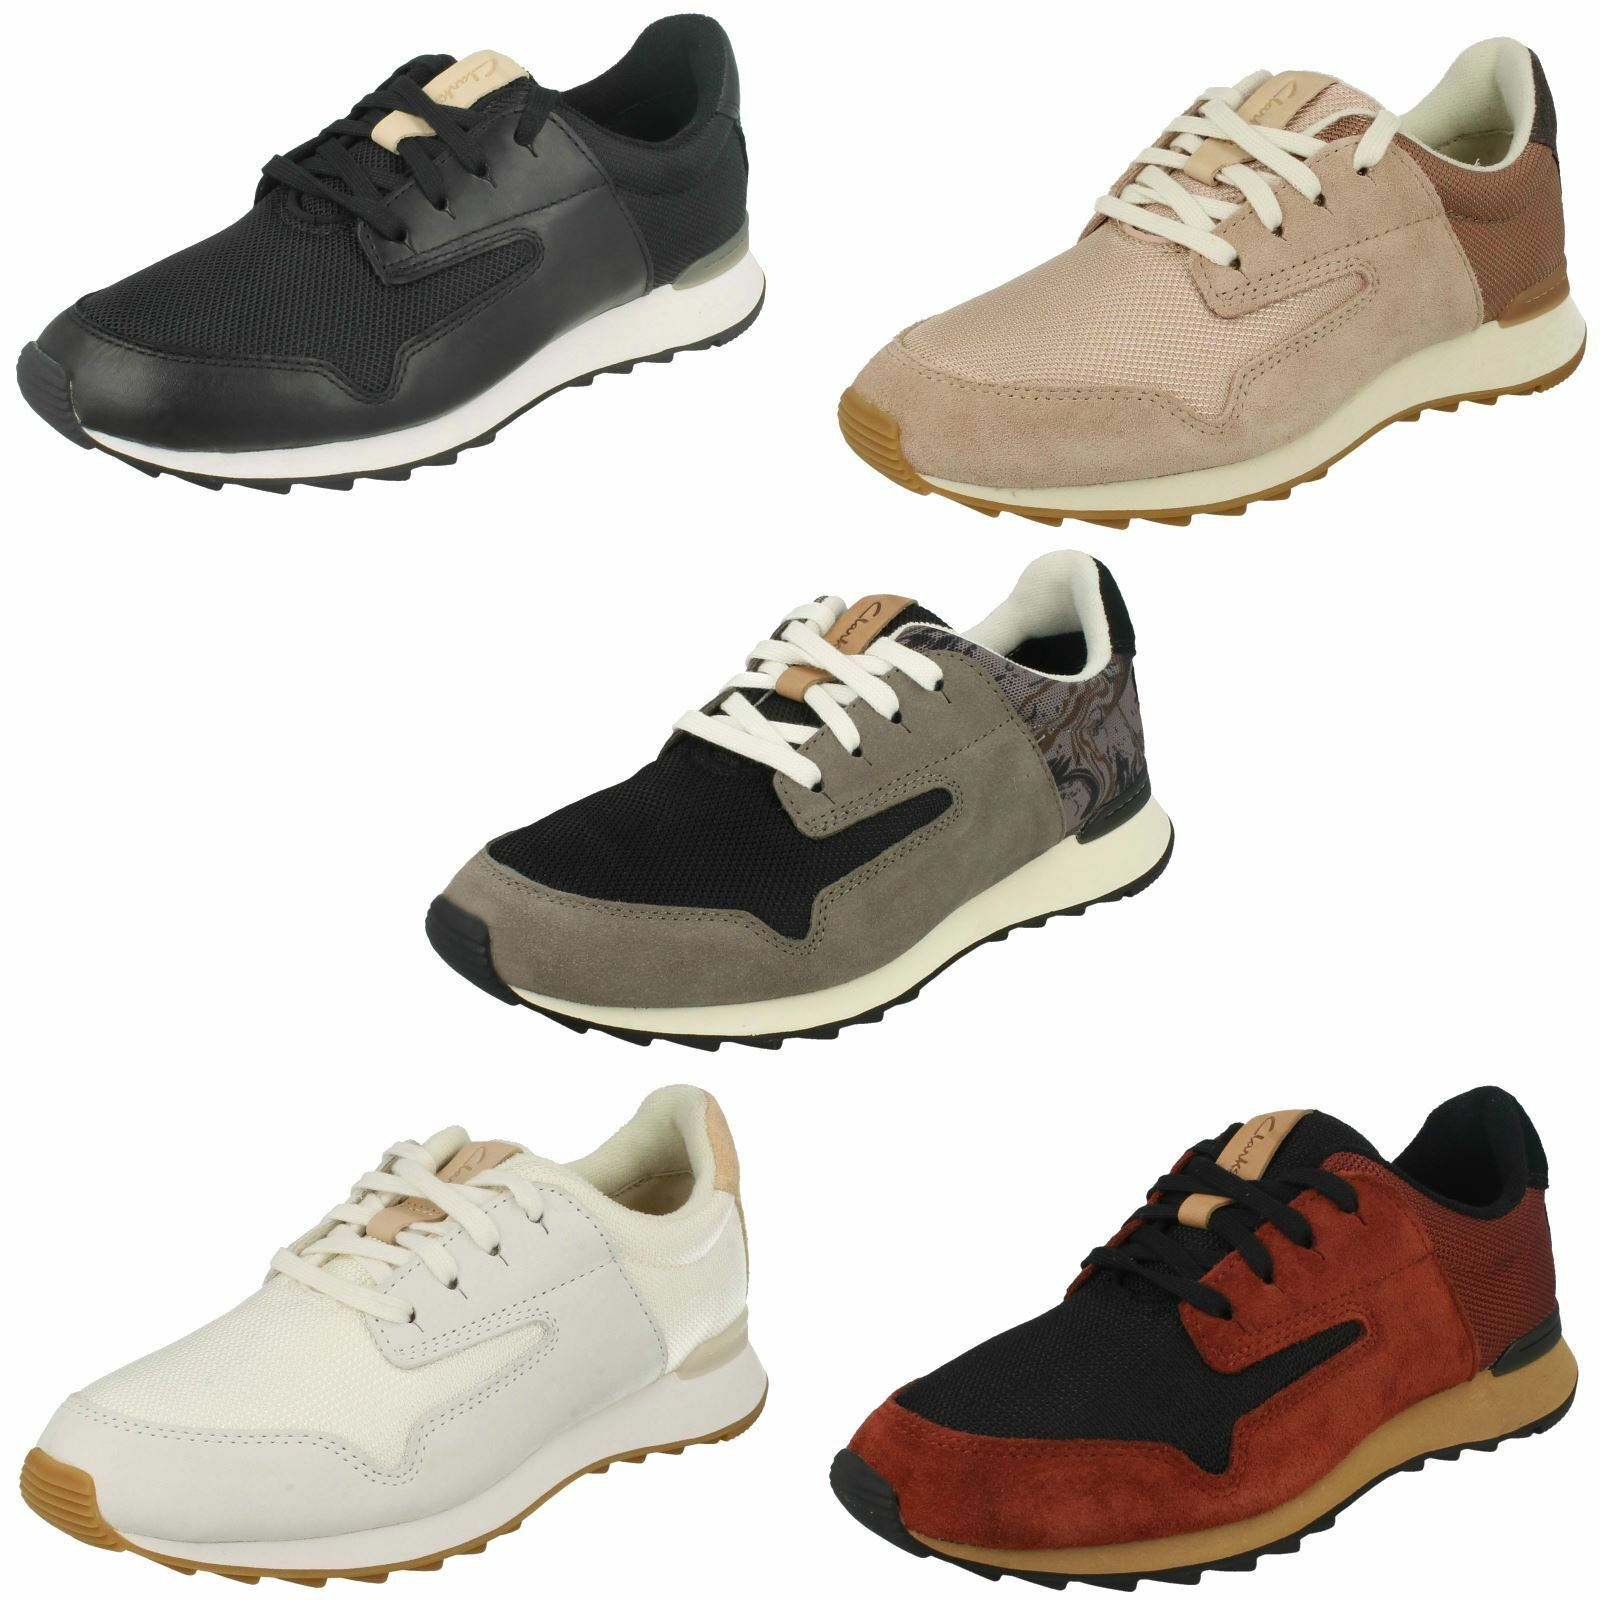 Ladies Clarks Casual Trainer Style shoes 'Floura Mix'